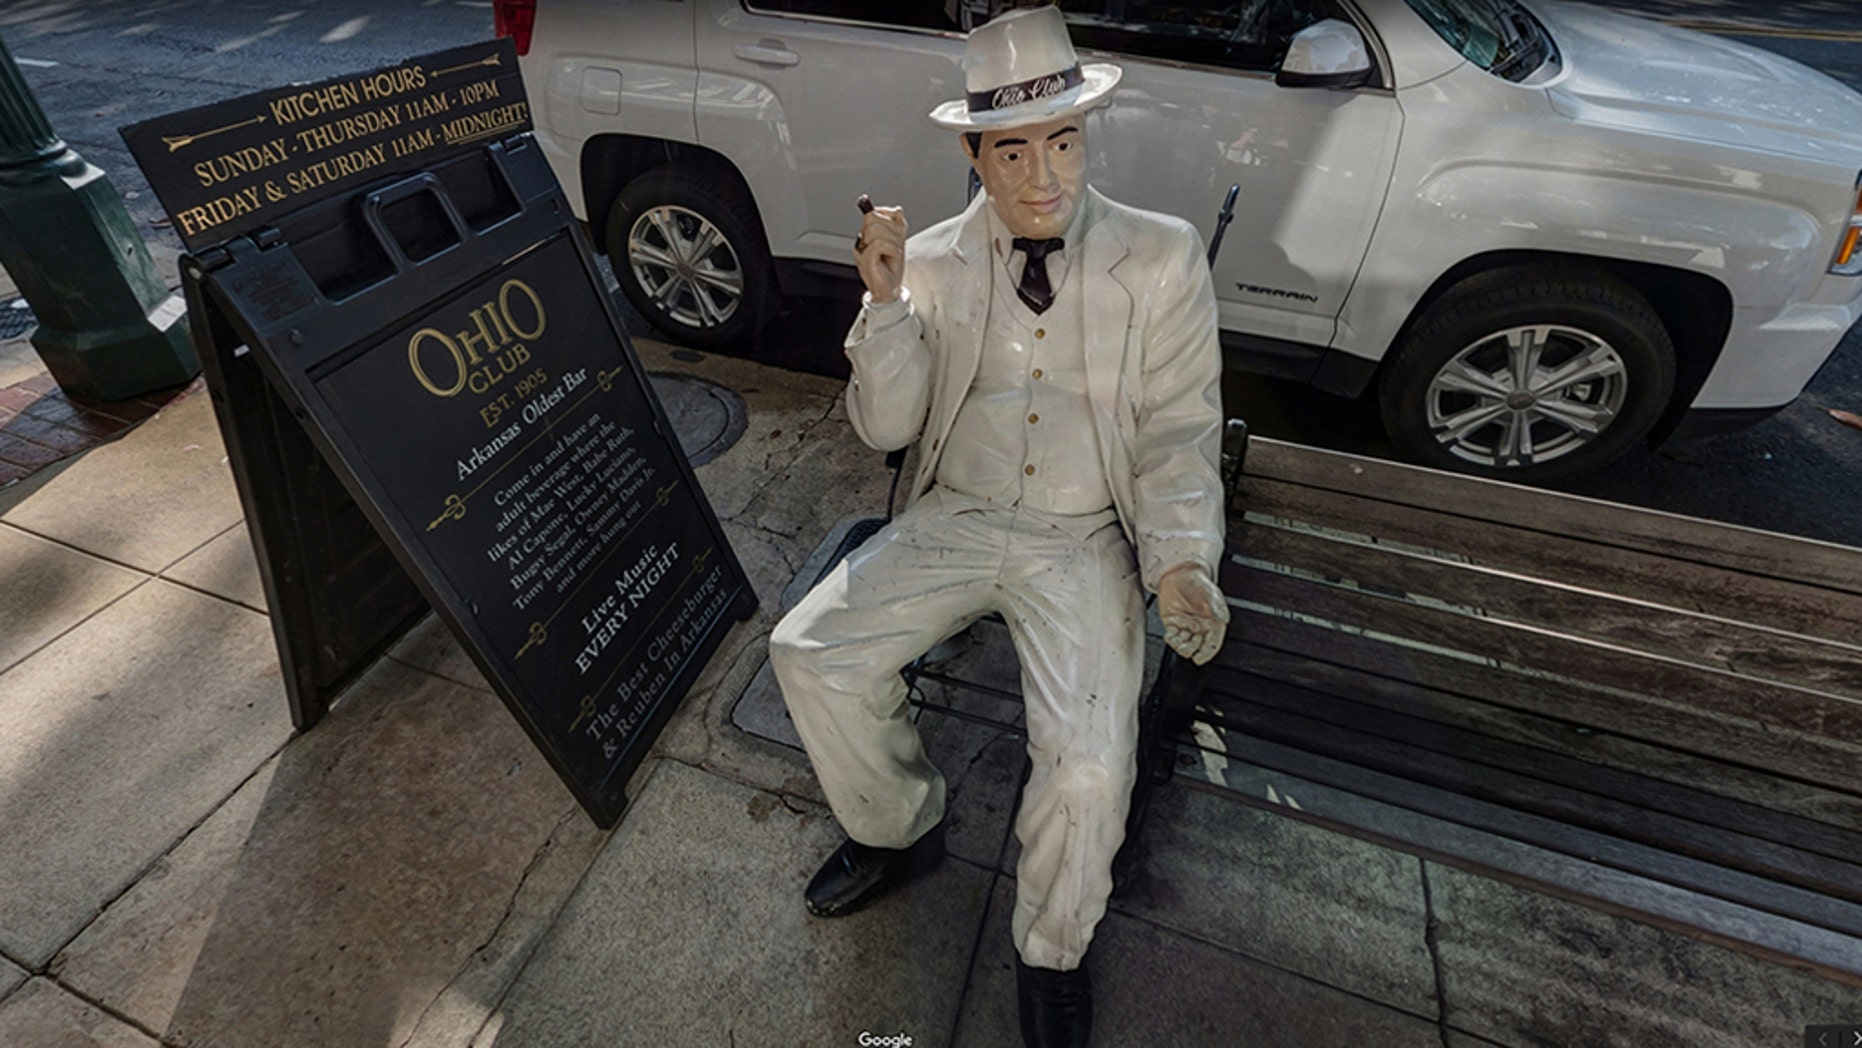 Two men allegedly tried to steal this statue of Al Capone outside the Ohio Club in Hot Springs, Arkansas, according to reports.